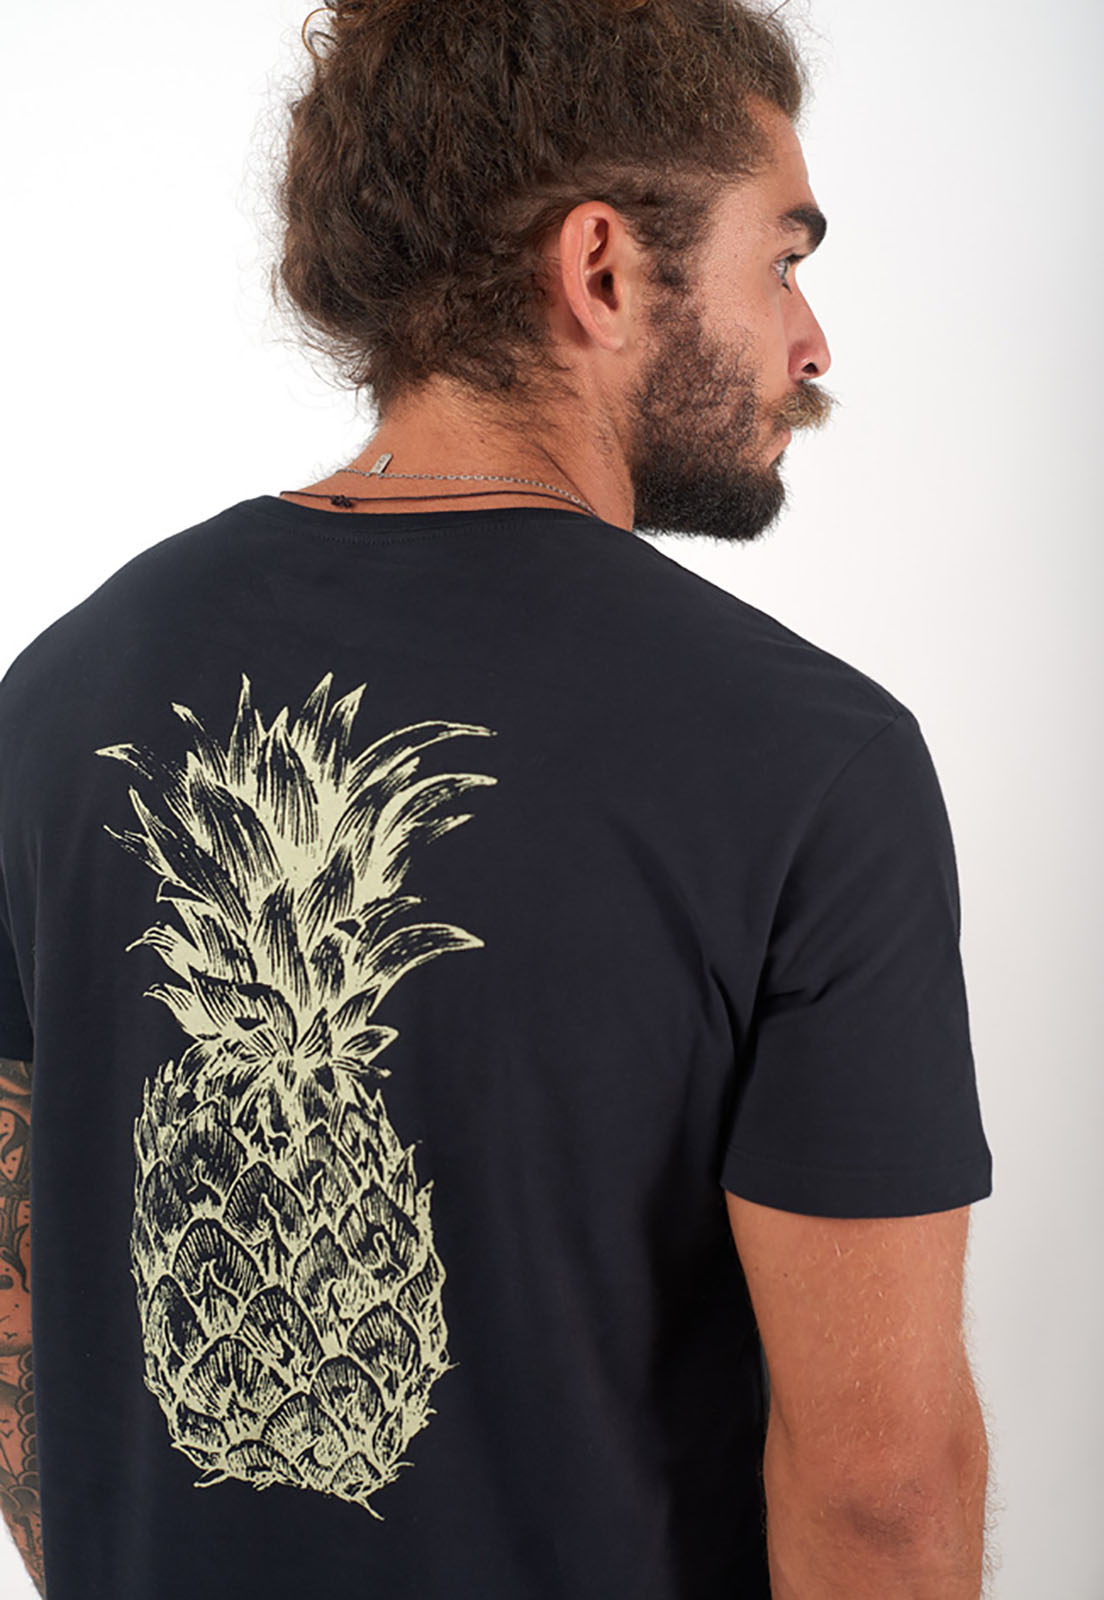 T-Shirt Pineapple preto melty  - melty surf & Co.